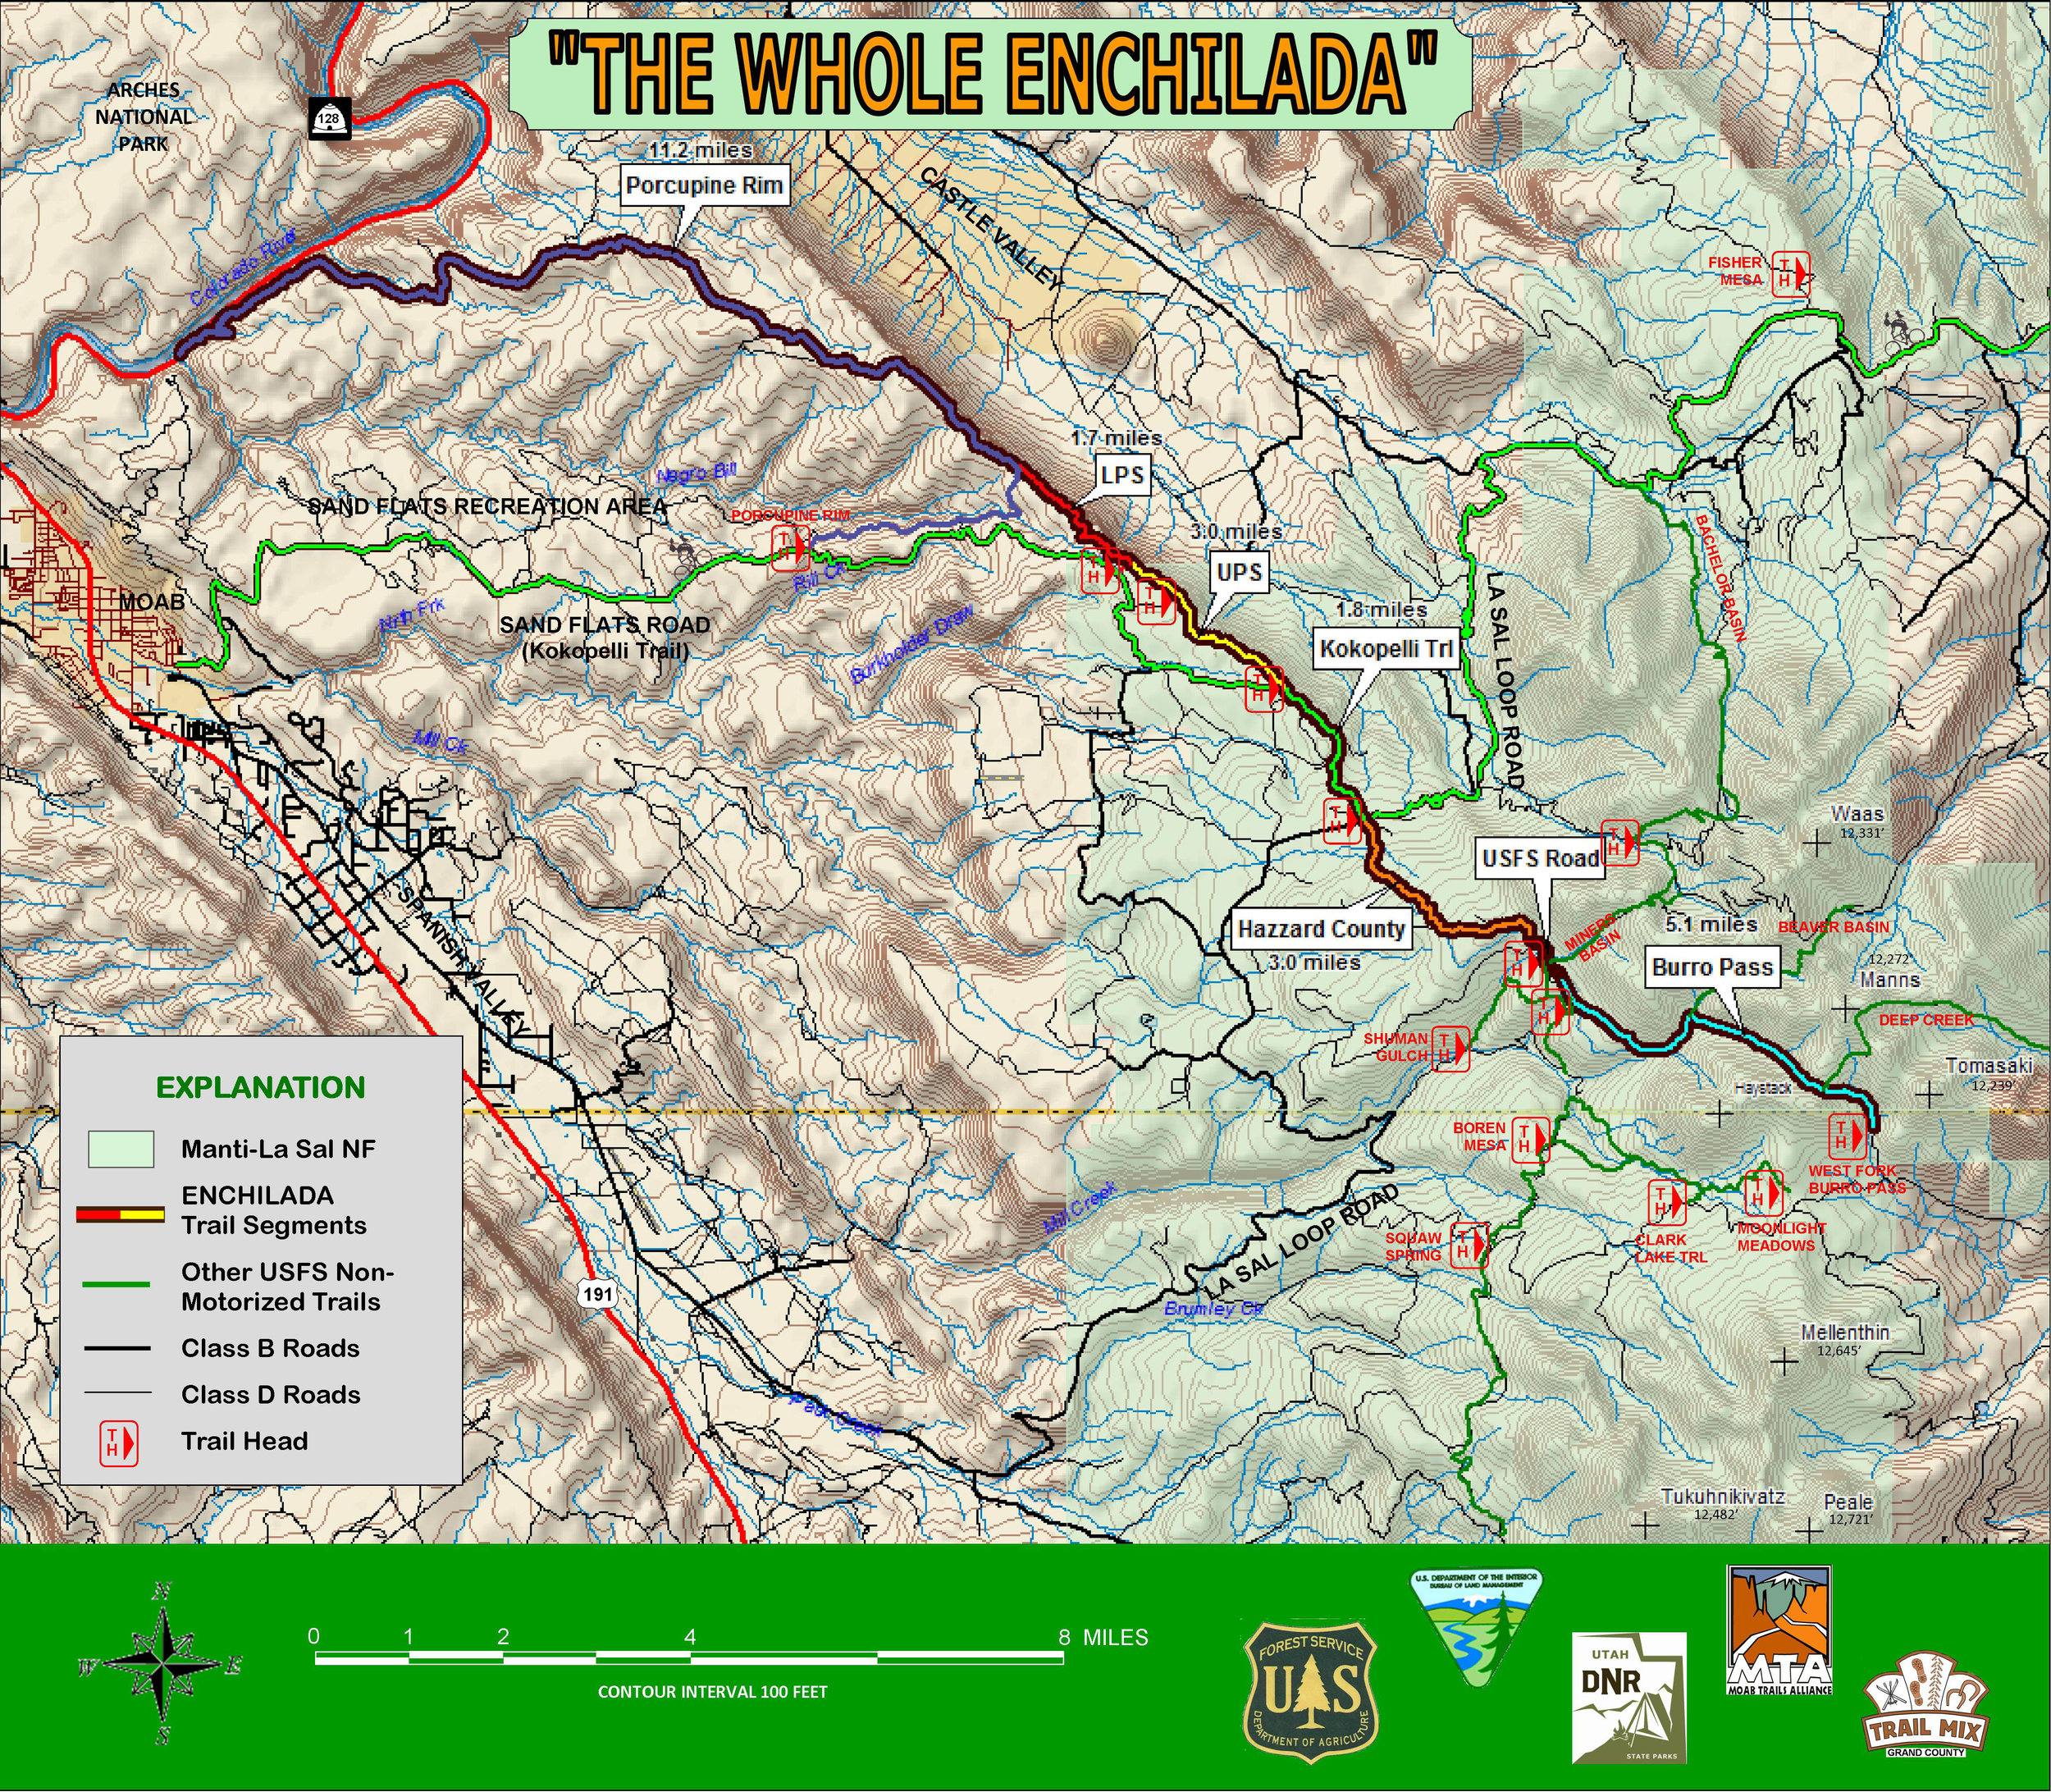 The Whole Enchilada Trail Map